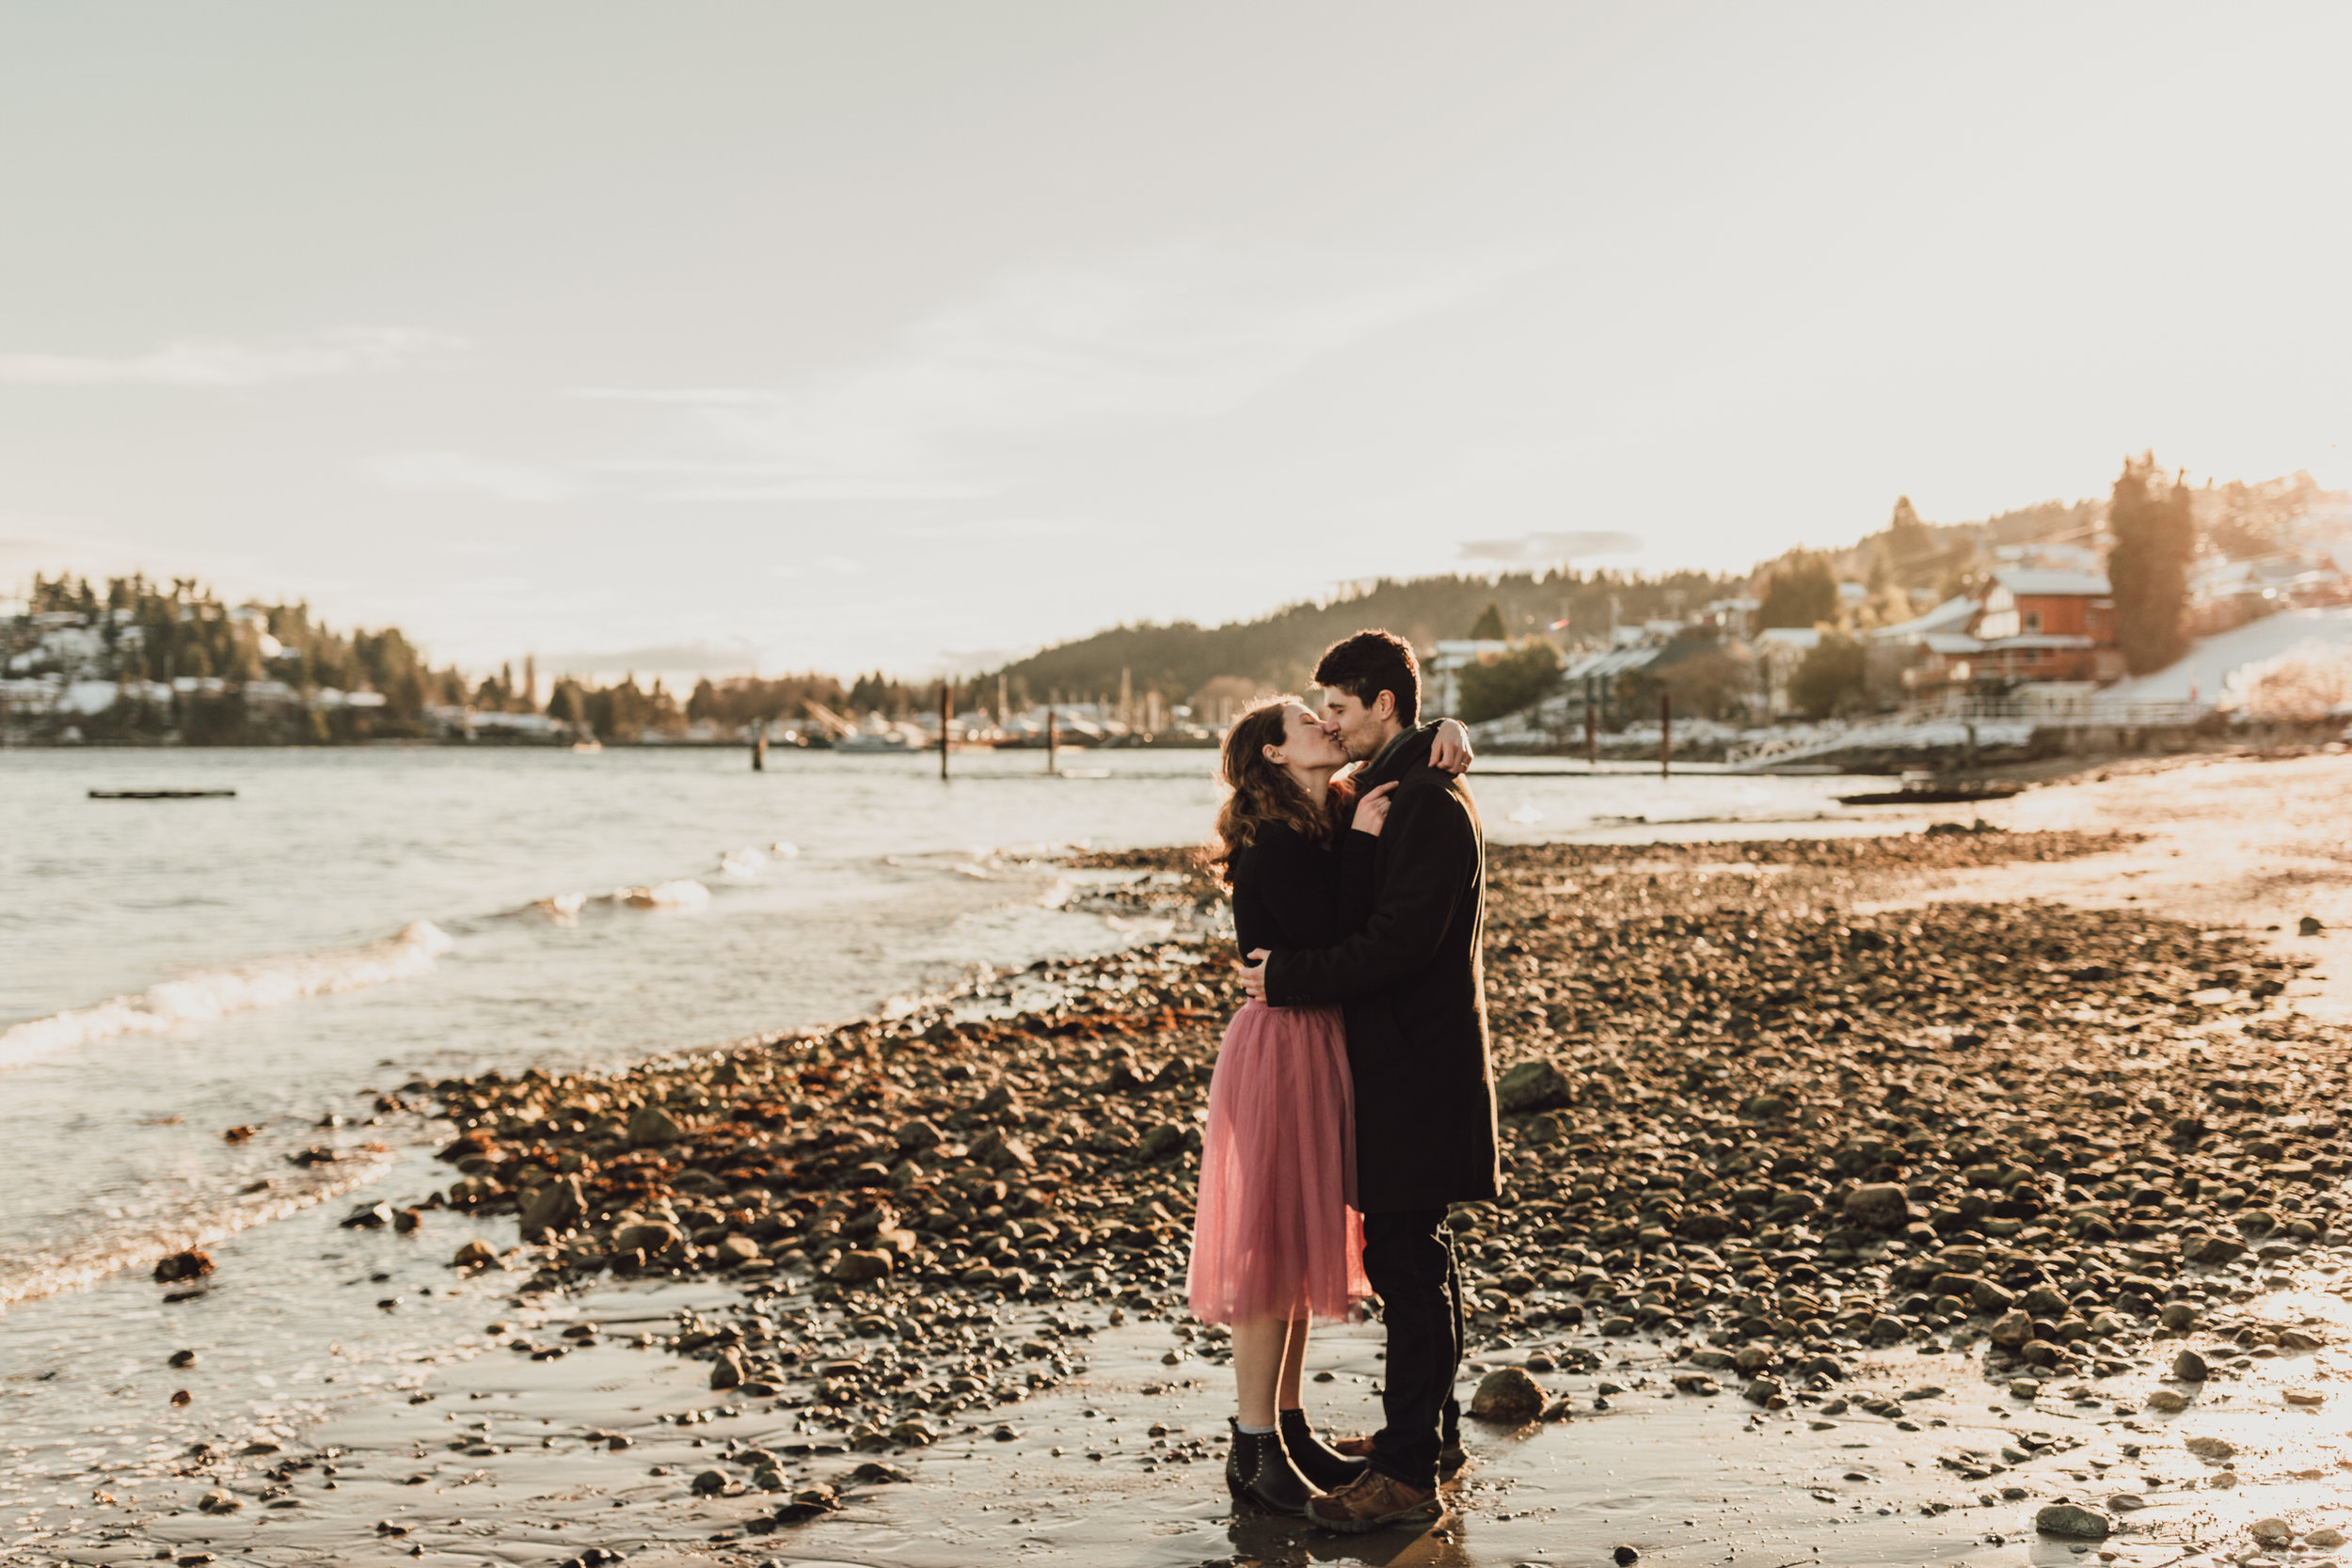 Snowy Engagement Photos - Gibsons Engagement Photos - Sunshine Coast Engagement Photos - Vancouver Wedding Photographer and Videographer - Jennifer Picard Photography072.JPG